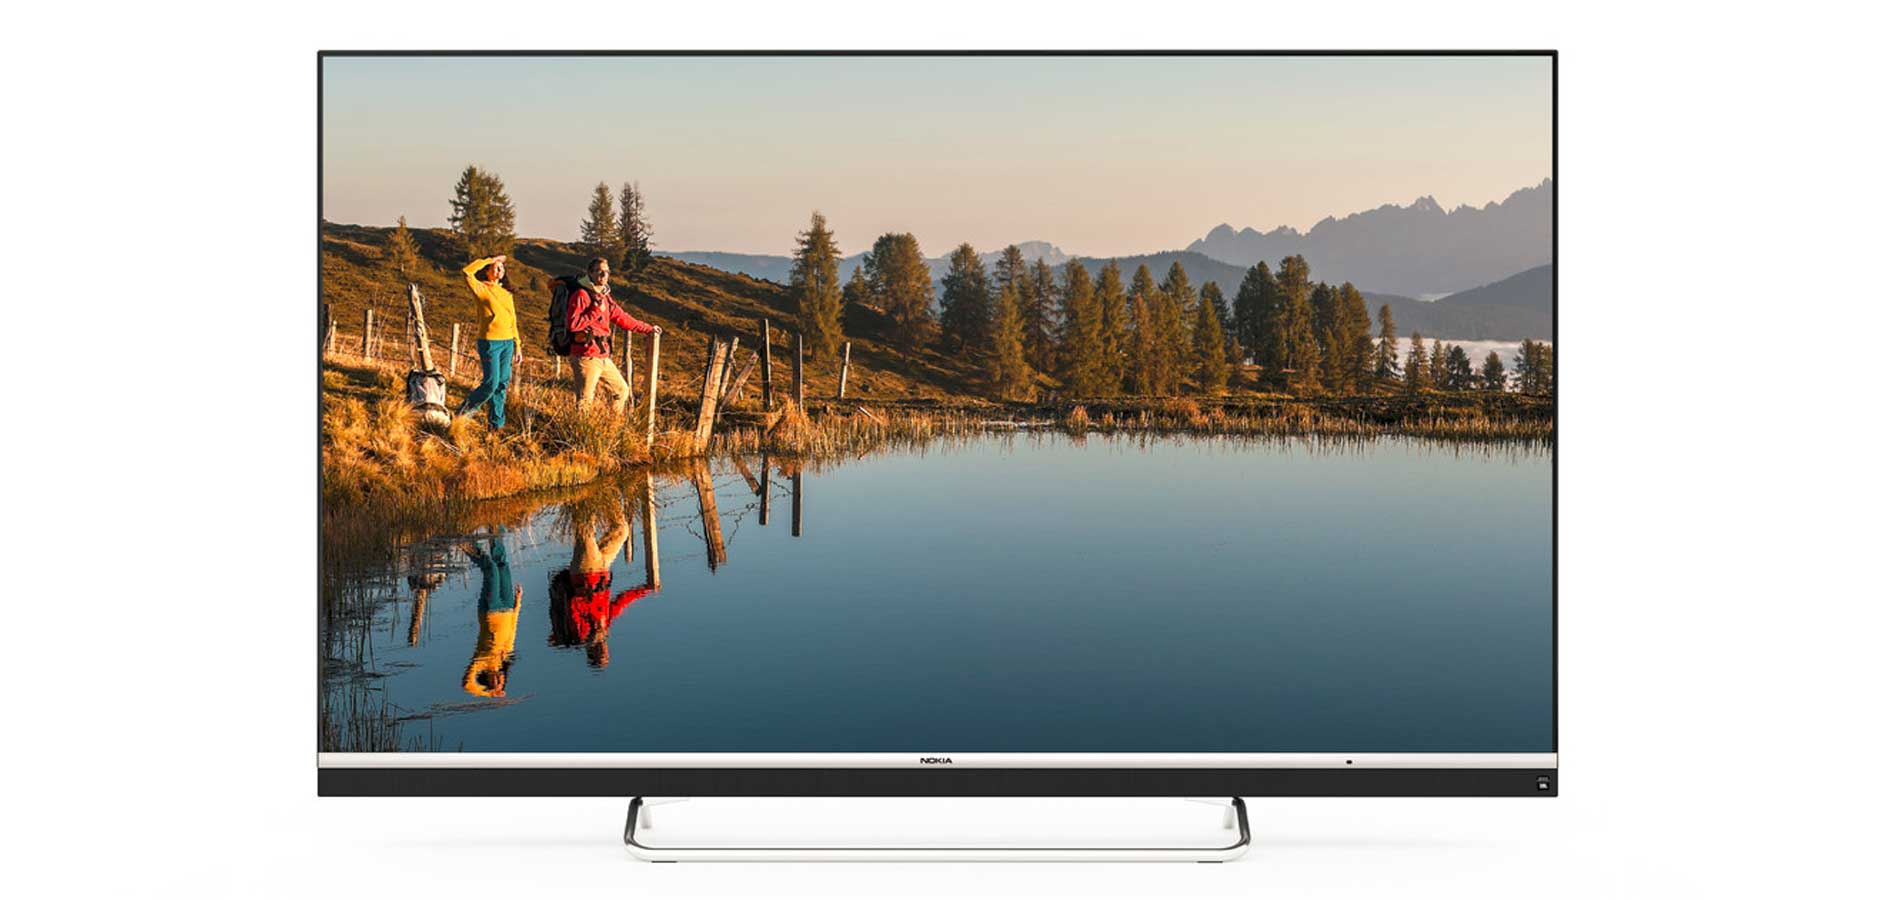 65 Inch TV Black Friday Deals